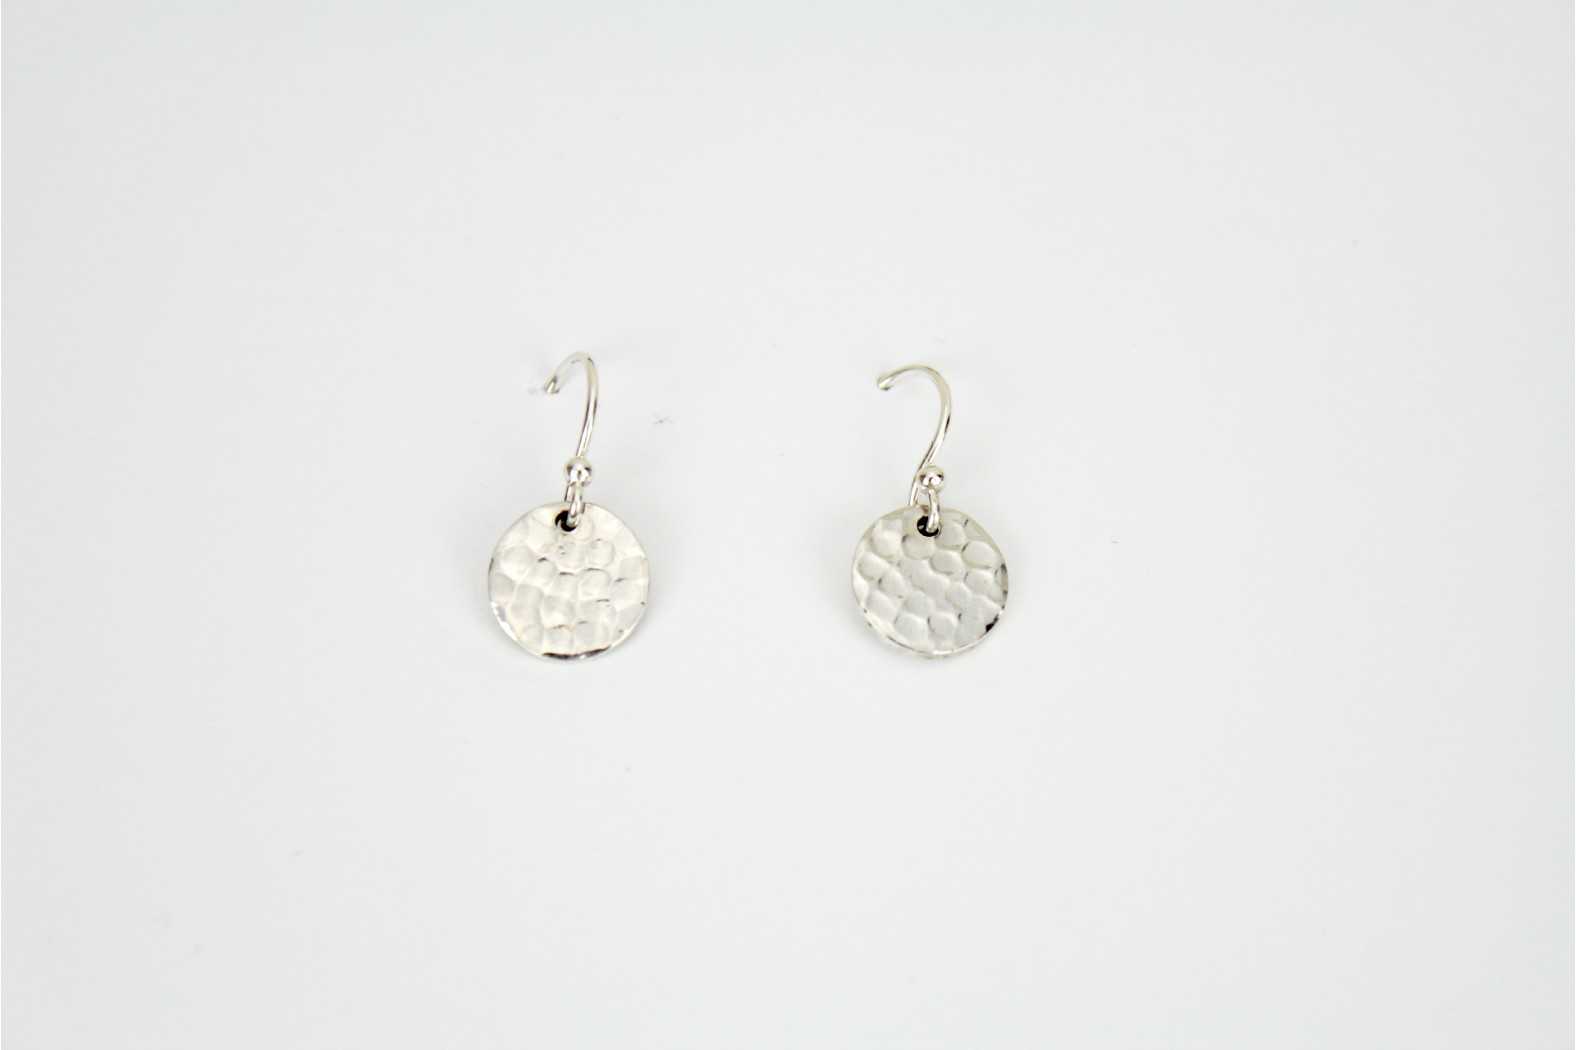 Circular plain pattern silver drop earrings Hand Made Individual design TEMPORARILY OUT OF STOCK.